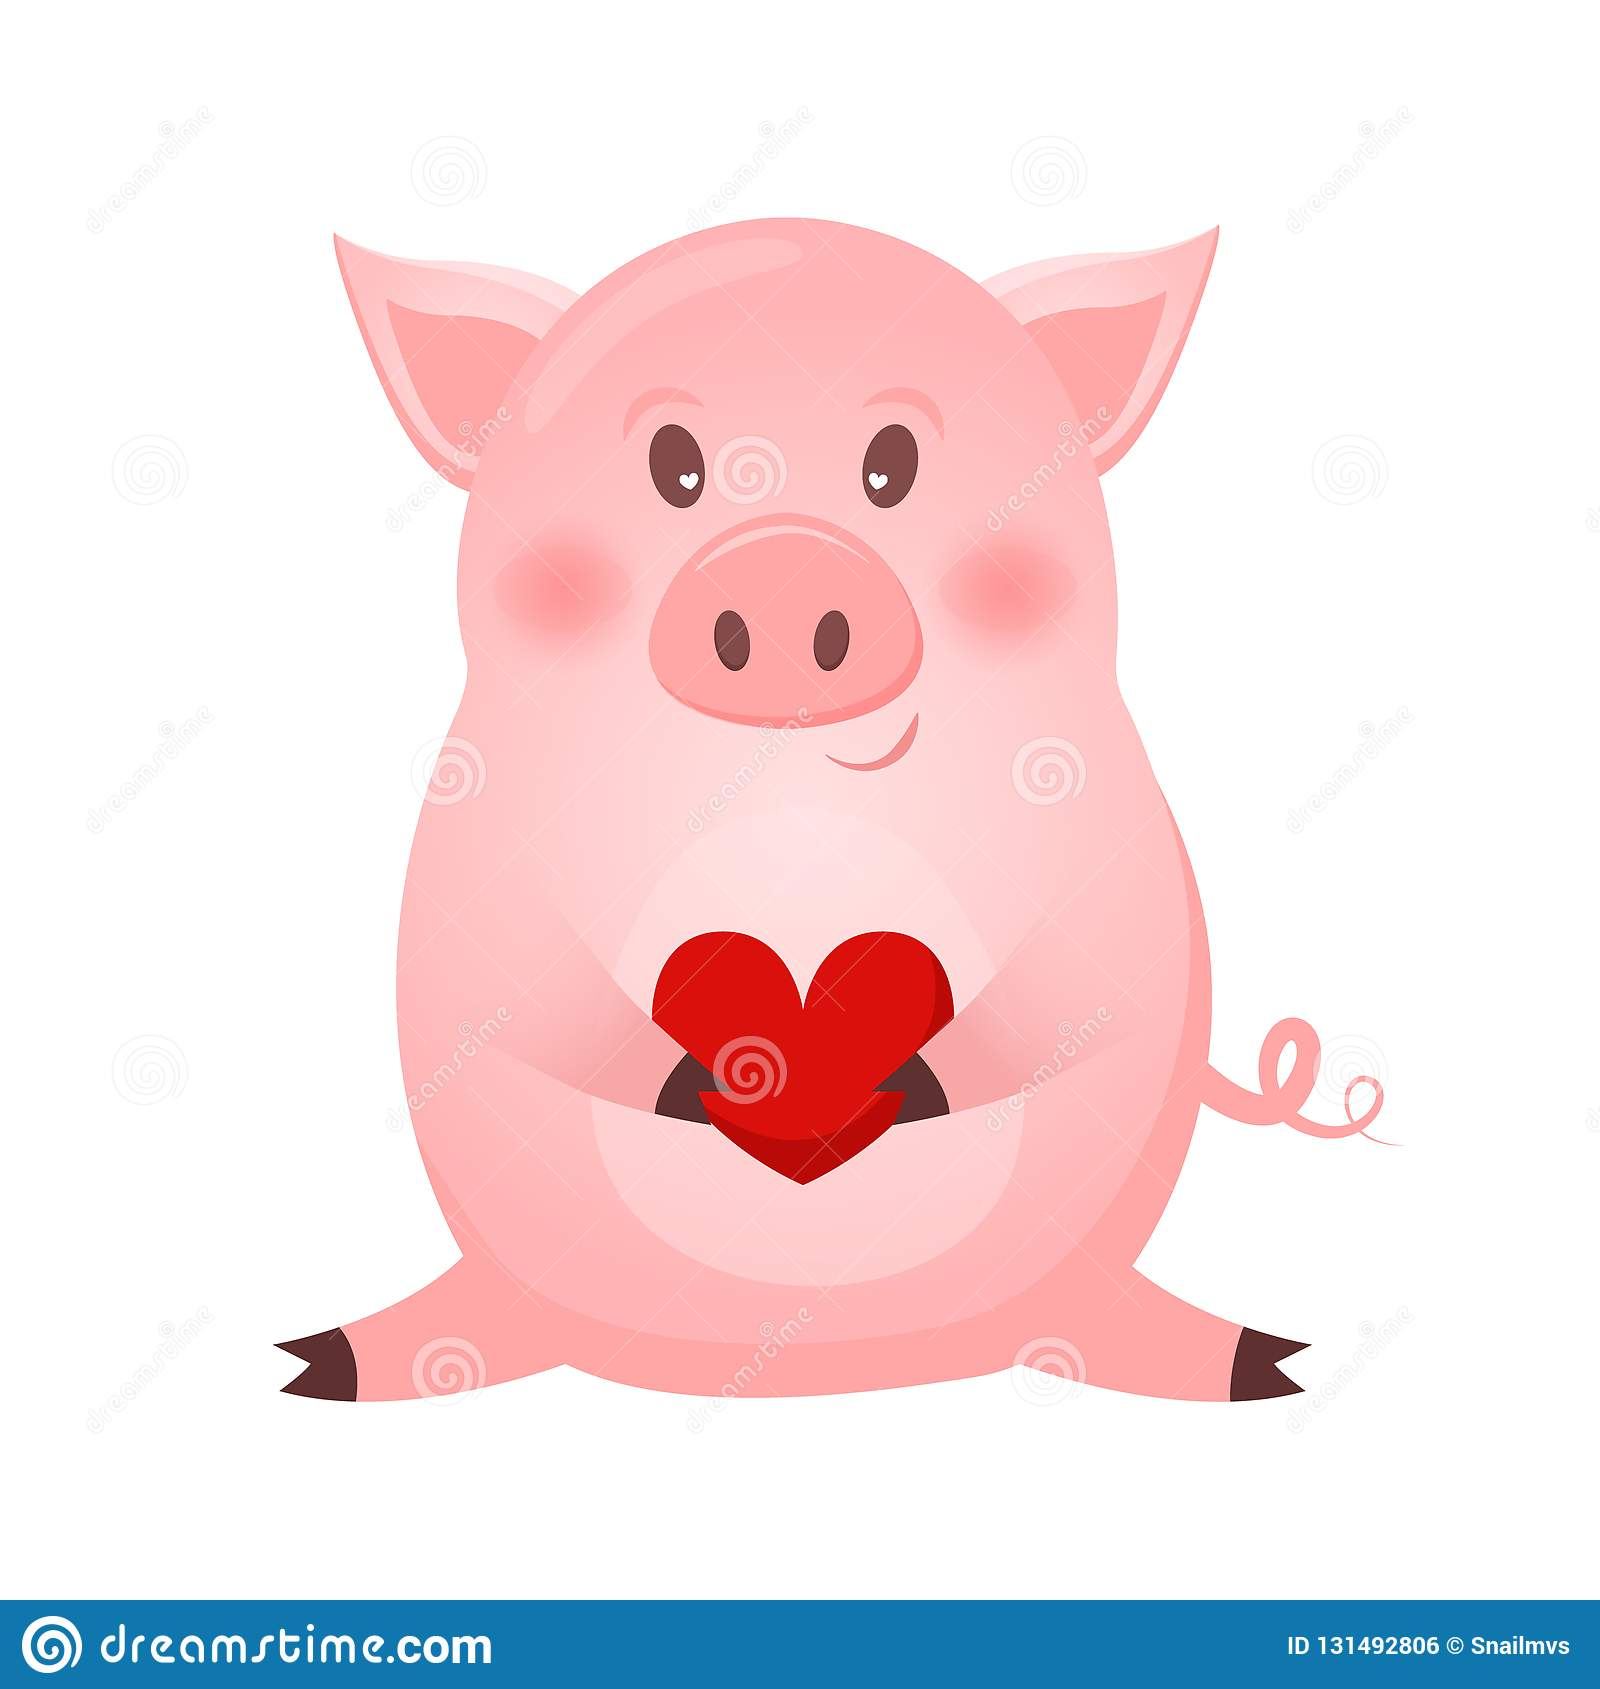 Drawing Of Cute Pig With Heart Vector Illustration Simple Concept